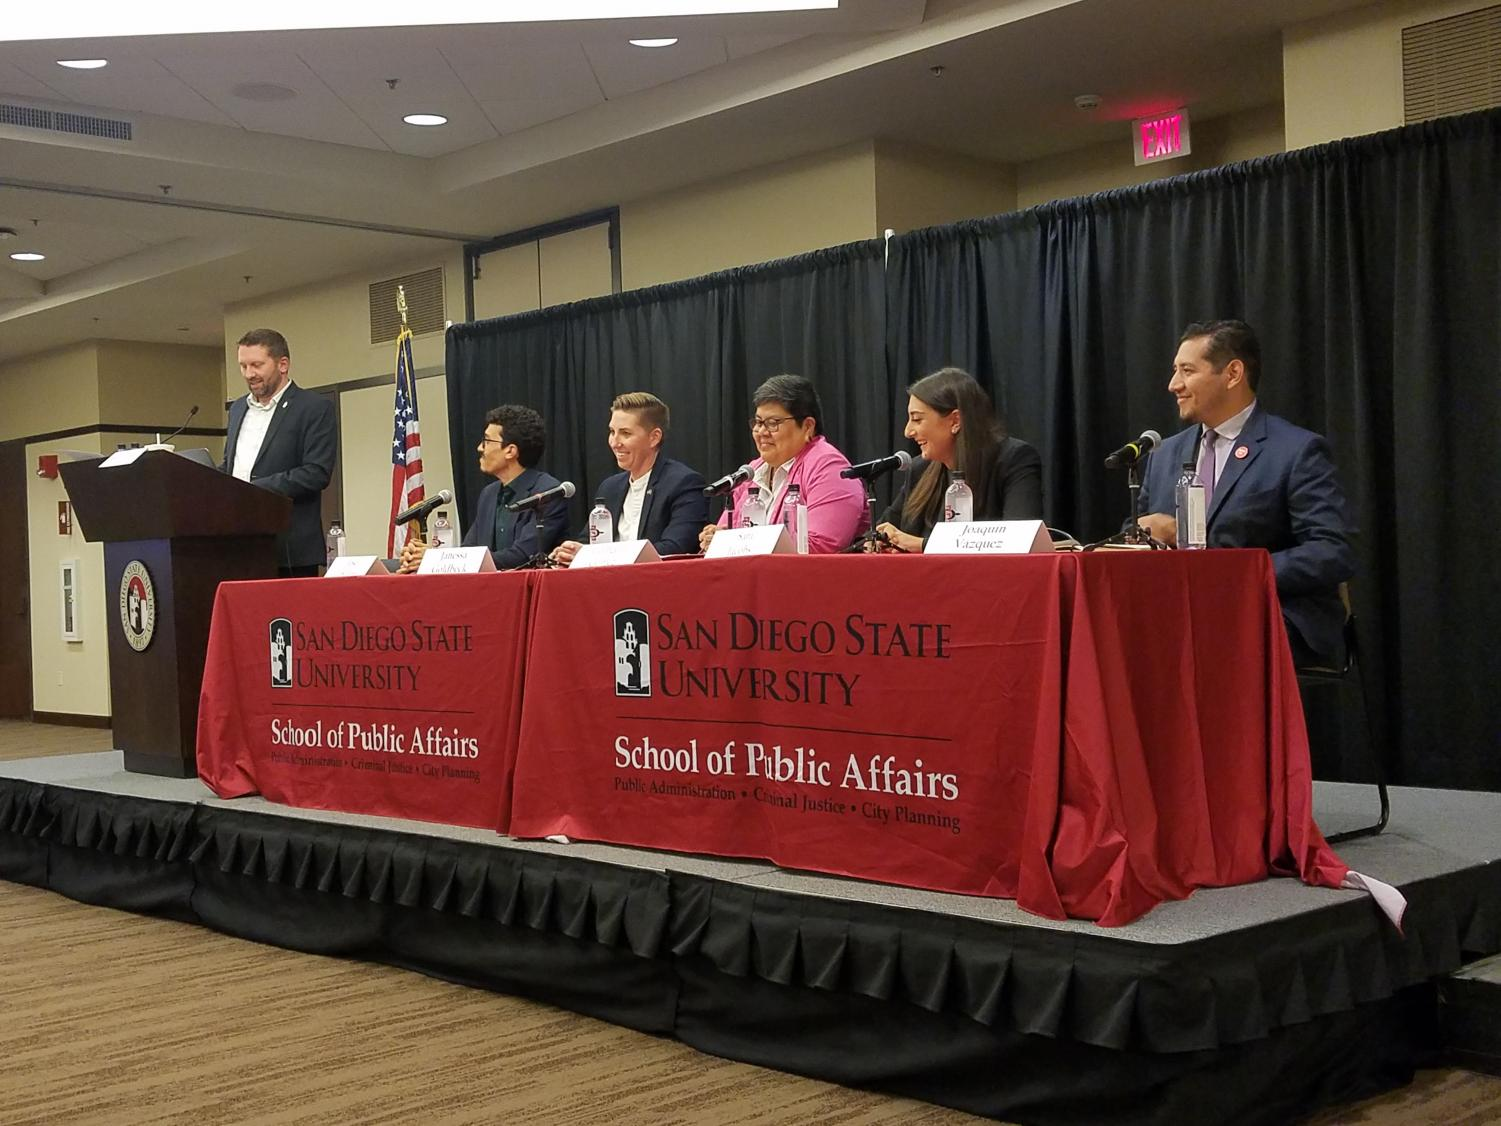 Candidates from the 53rd Congressional District discuss foreign policy and national security issues.